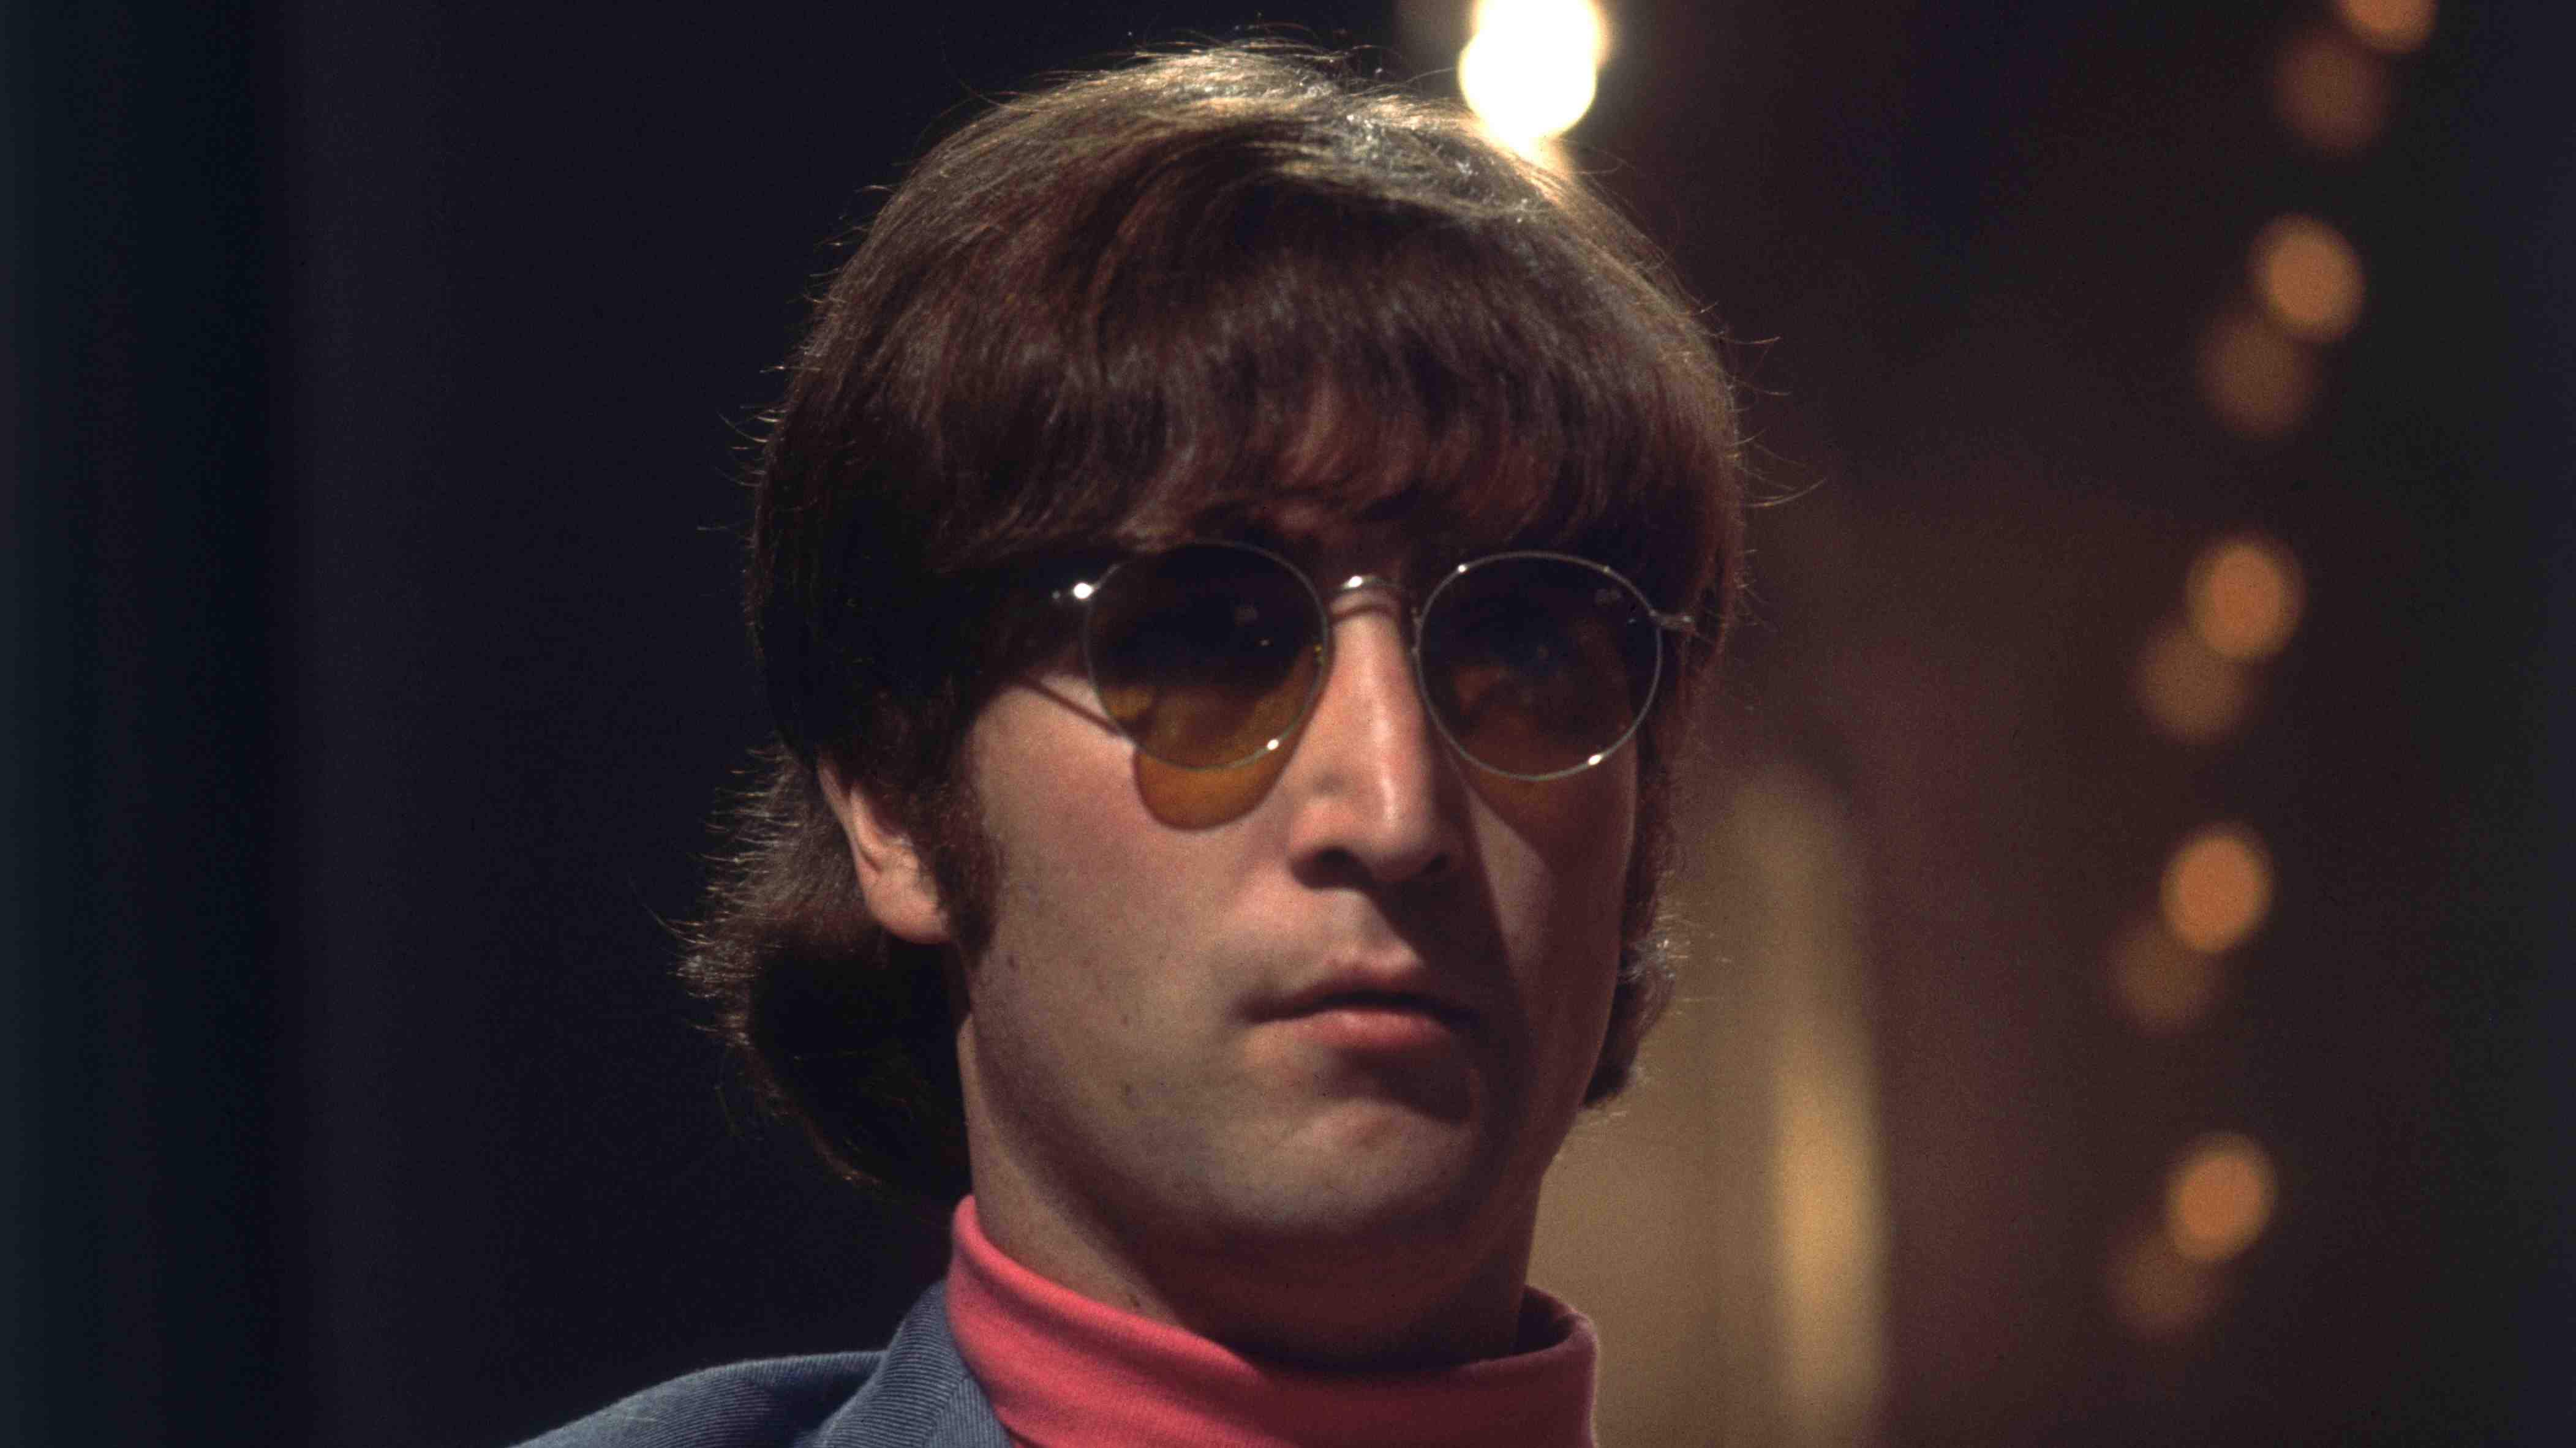 The 10 Best John Lennon Songs You May Have Never Heard - CultureSonar